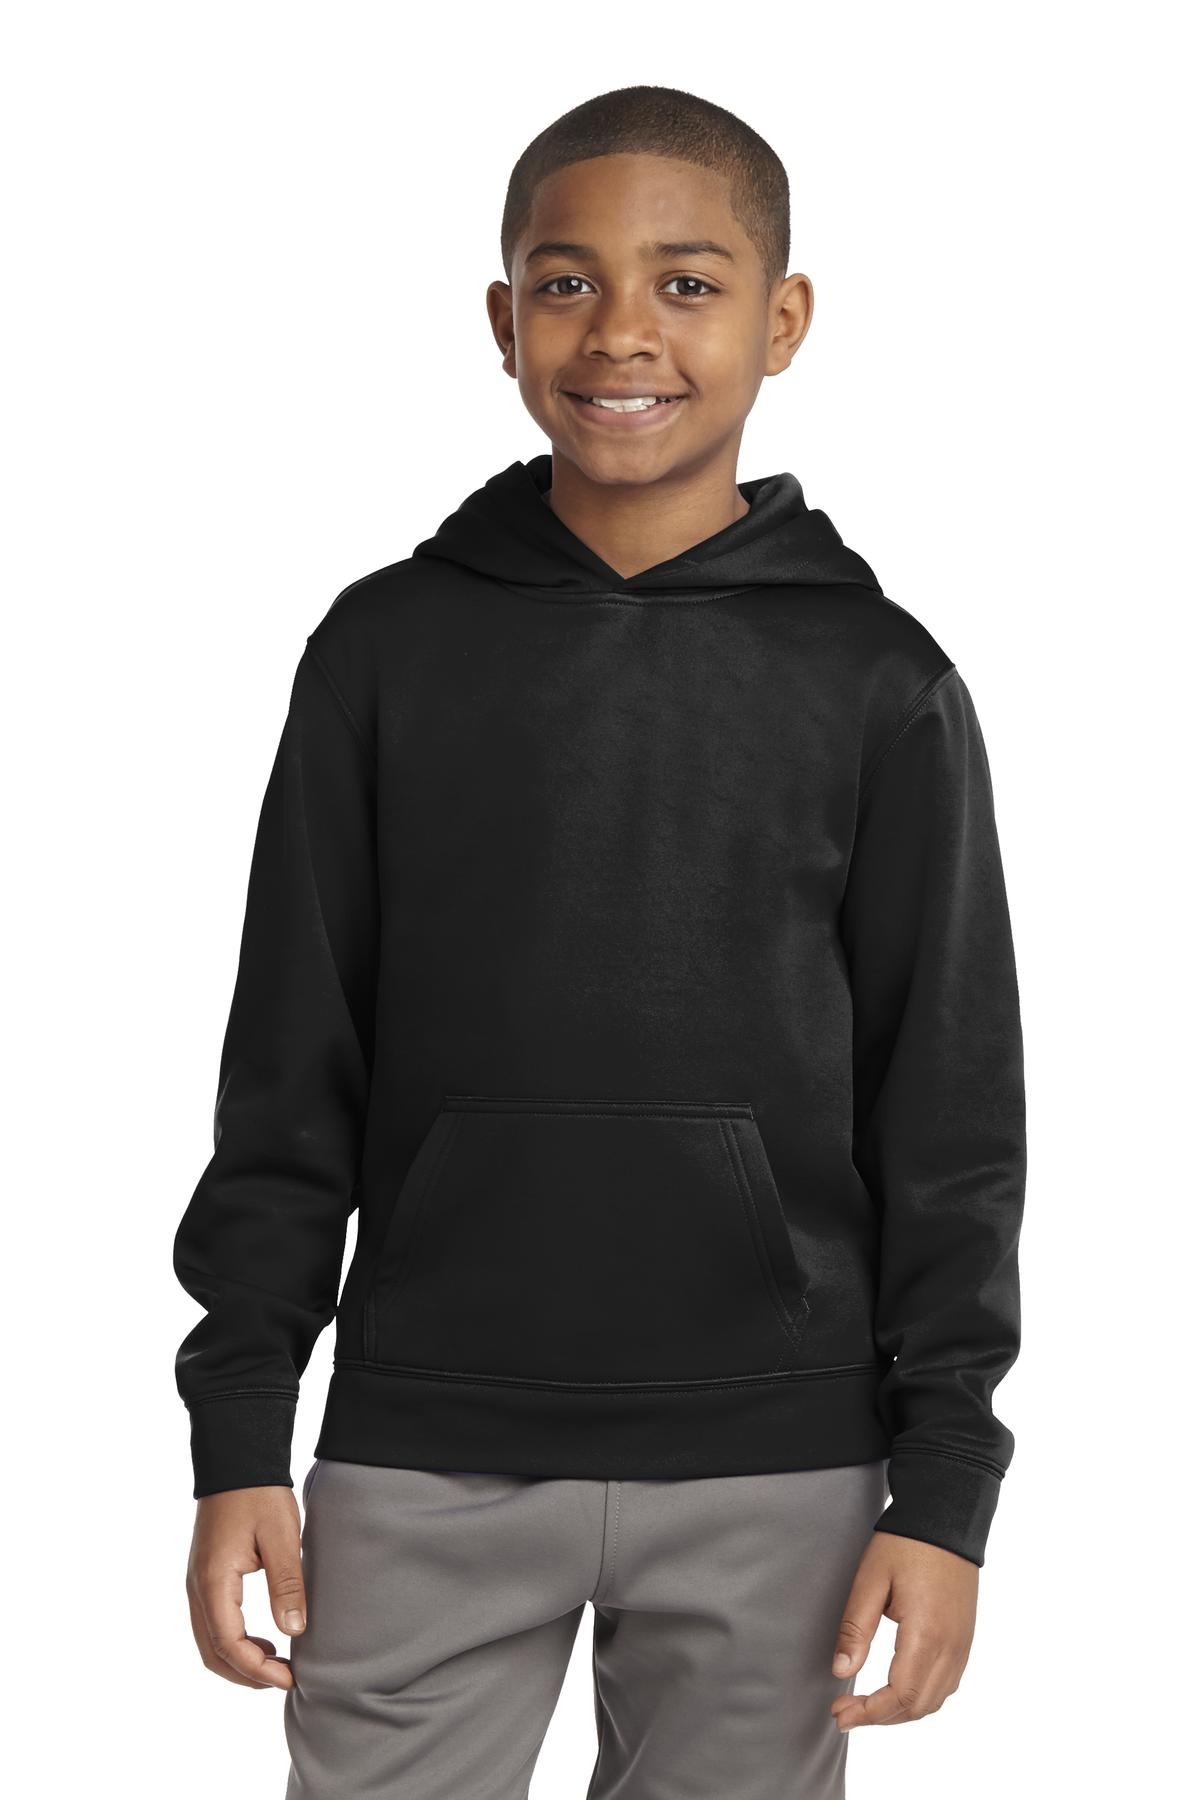 Sport-Tek ®  Youth Sport-Wick ®  Fleece Hooded Pullover. YST244 - Black